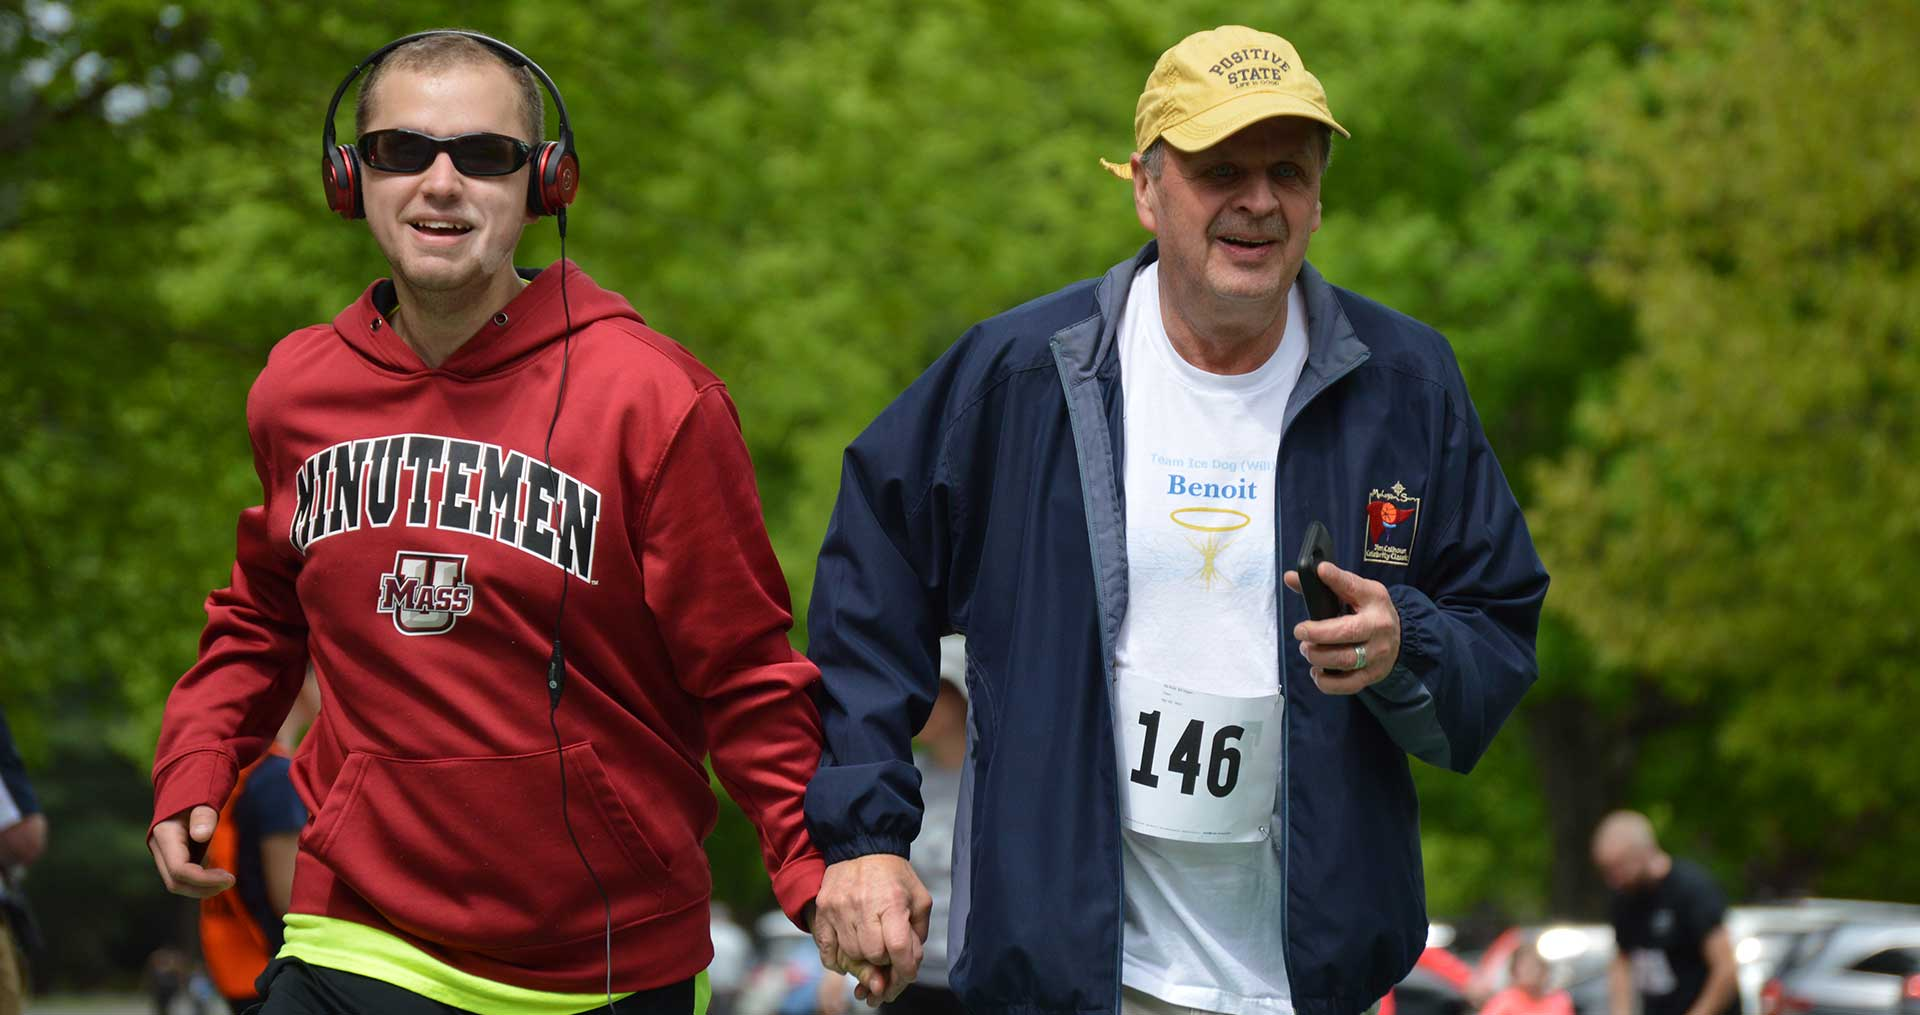 young-man-and-father-finishing-race-for-web